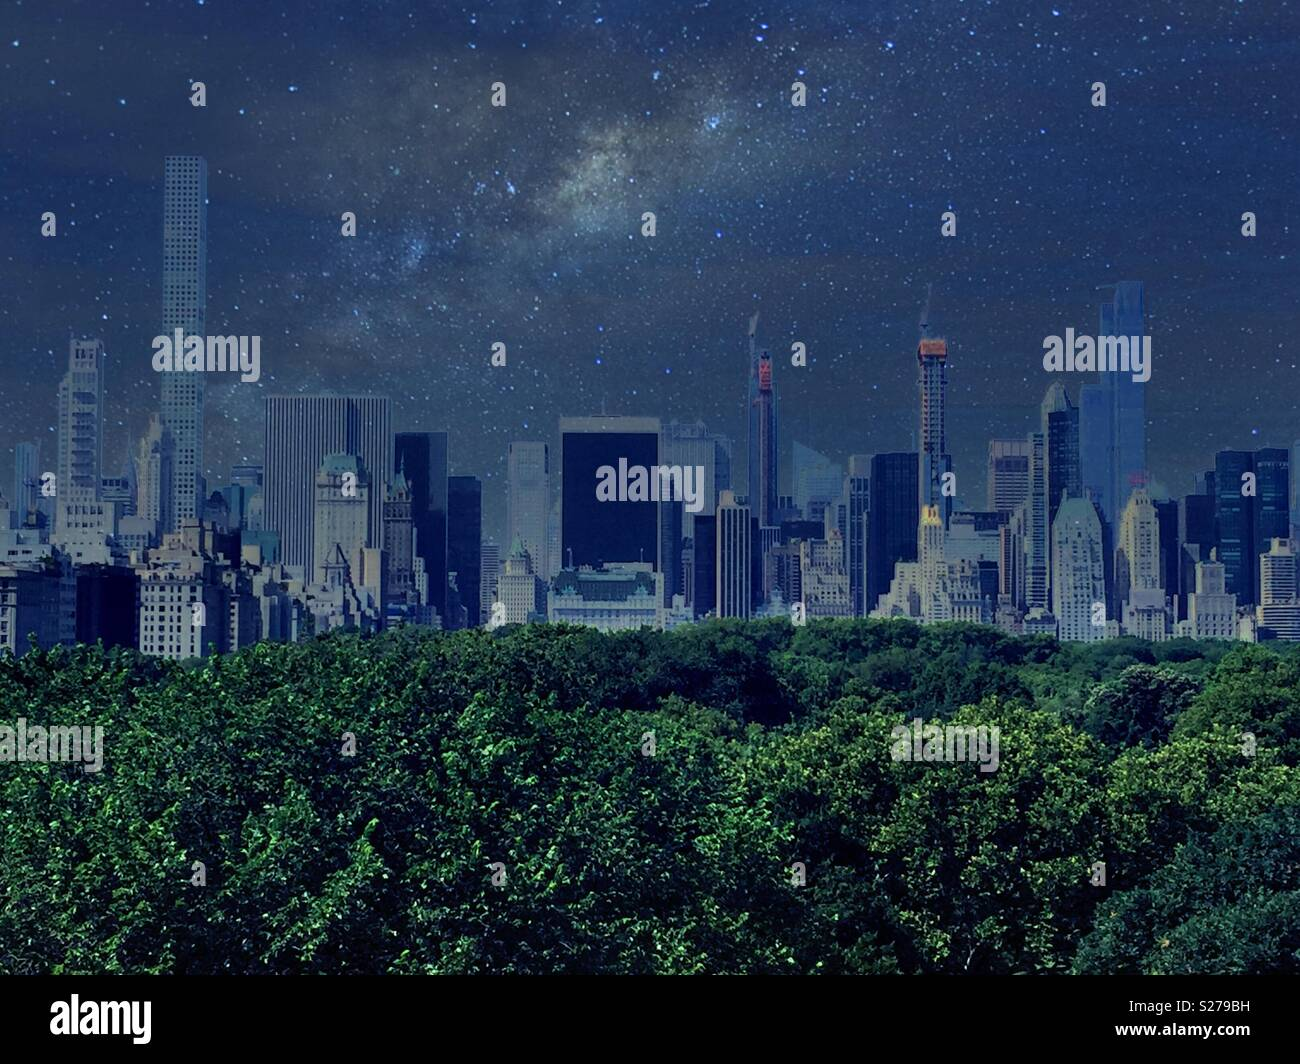 Night time image of midtown Manhattan skyline with Central Park trees in the foreground, NYC, USA - Stock Image